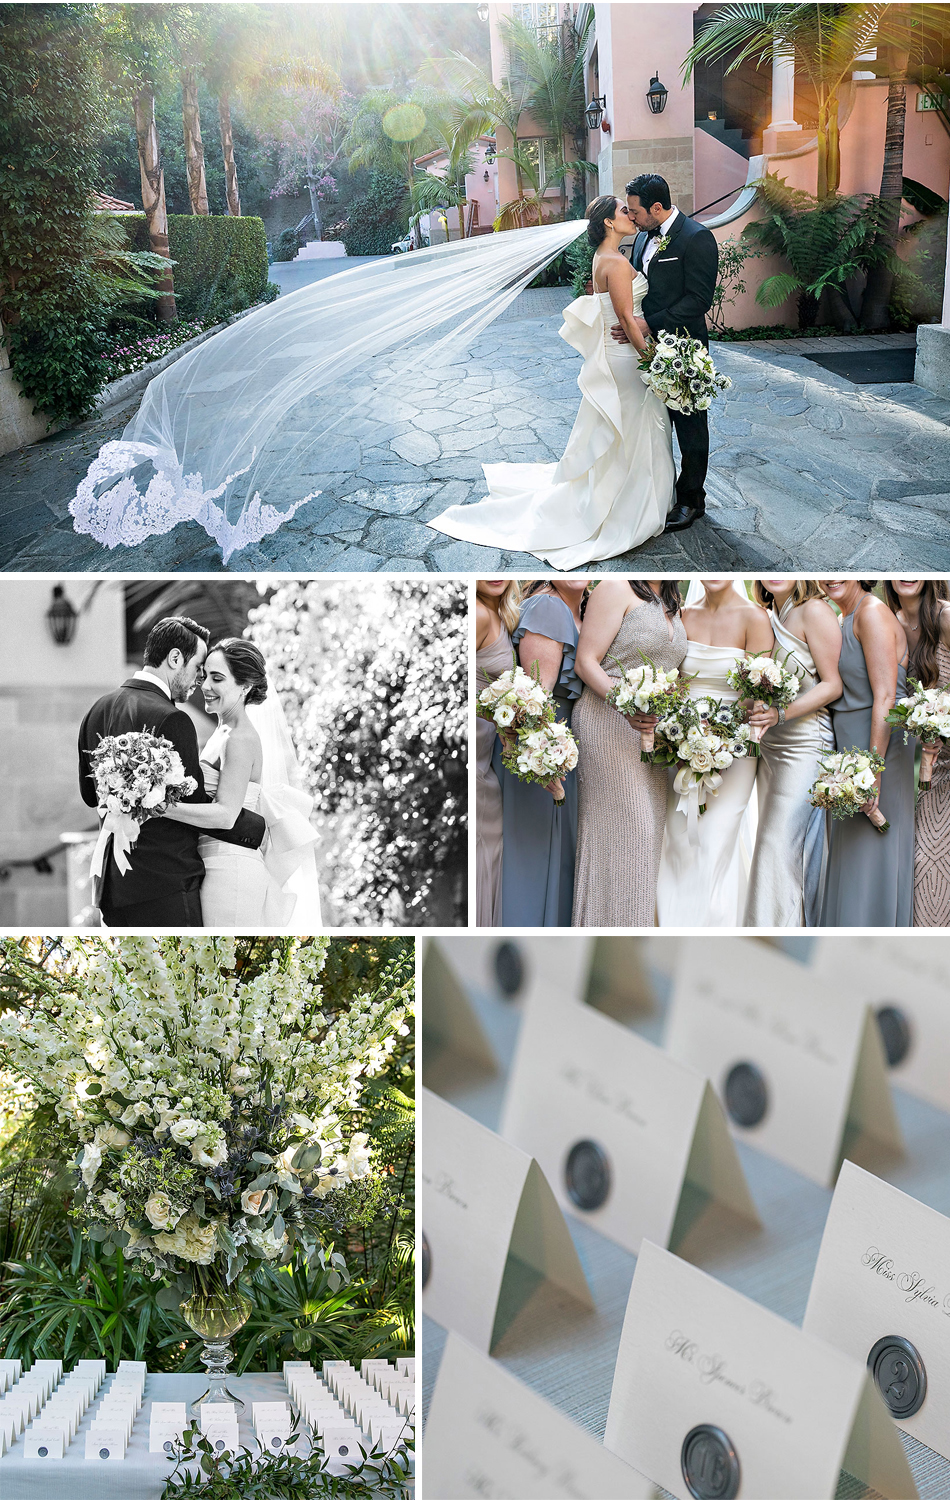 internationaleventcompany.com | International Event Company Los Angeles Wedding Planner and Designer | Weddings at Hotel Bel Air | Luxury Event Planners in Southern California _ (2).jpg